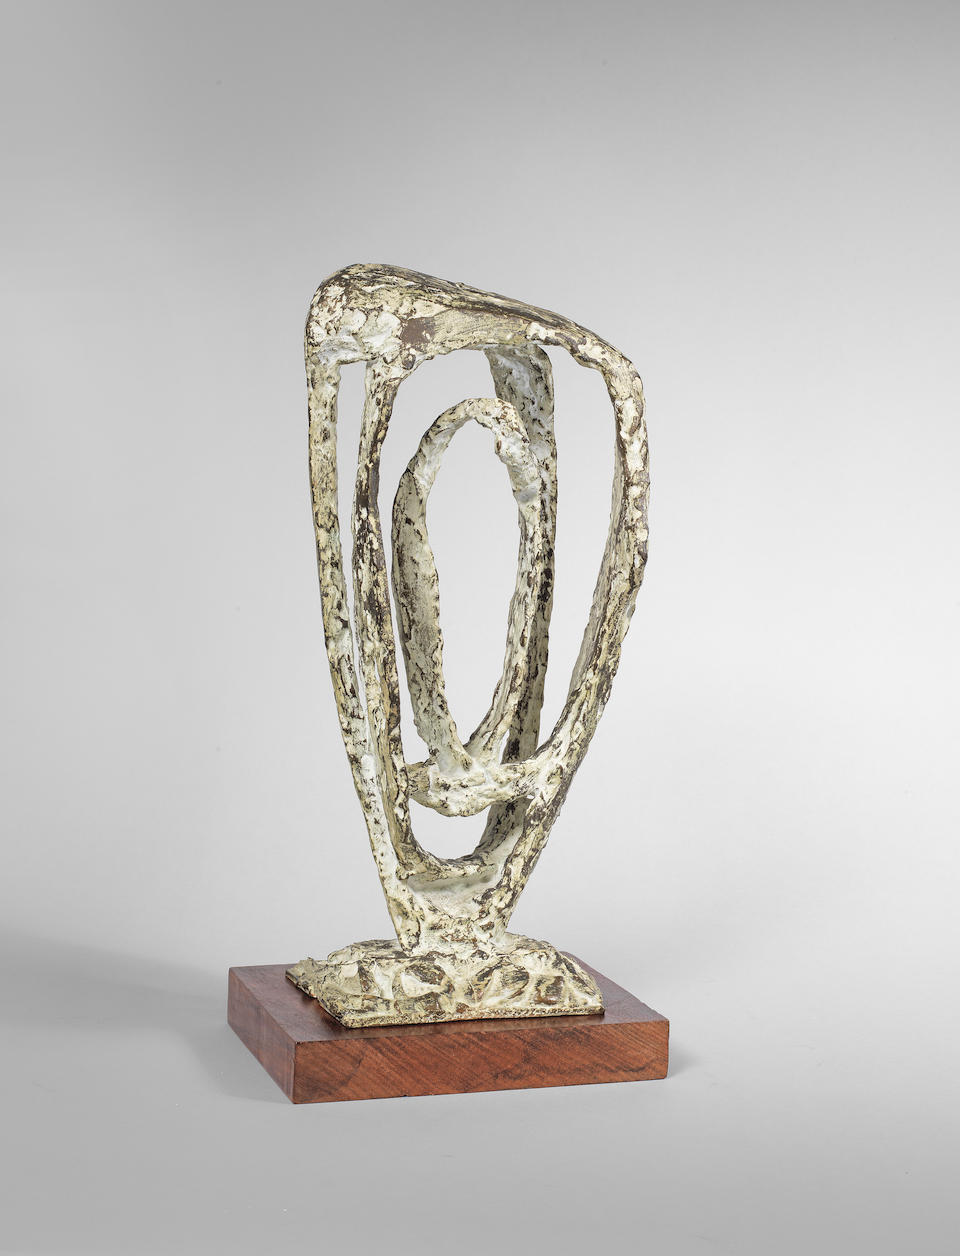 Dame Barbara Hepworth (British, 1903-1975) Maquette (Variation on a Theme) 43.8 cm. (17 1/4 in.) high (excluding the wooden base) (Conceived in 1958, the present work is number 2 from the edition of 9)